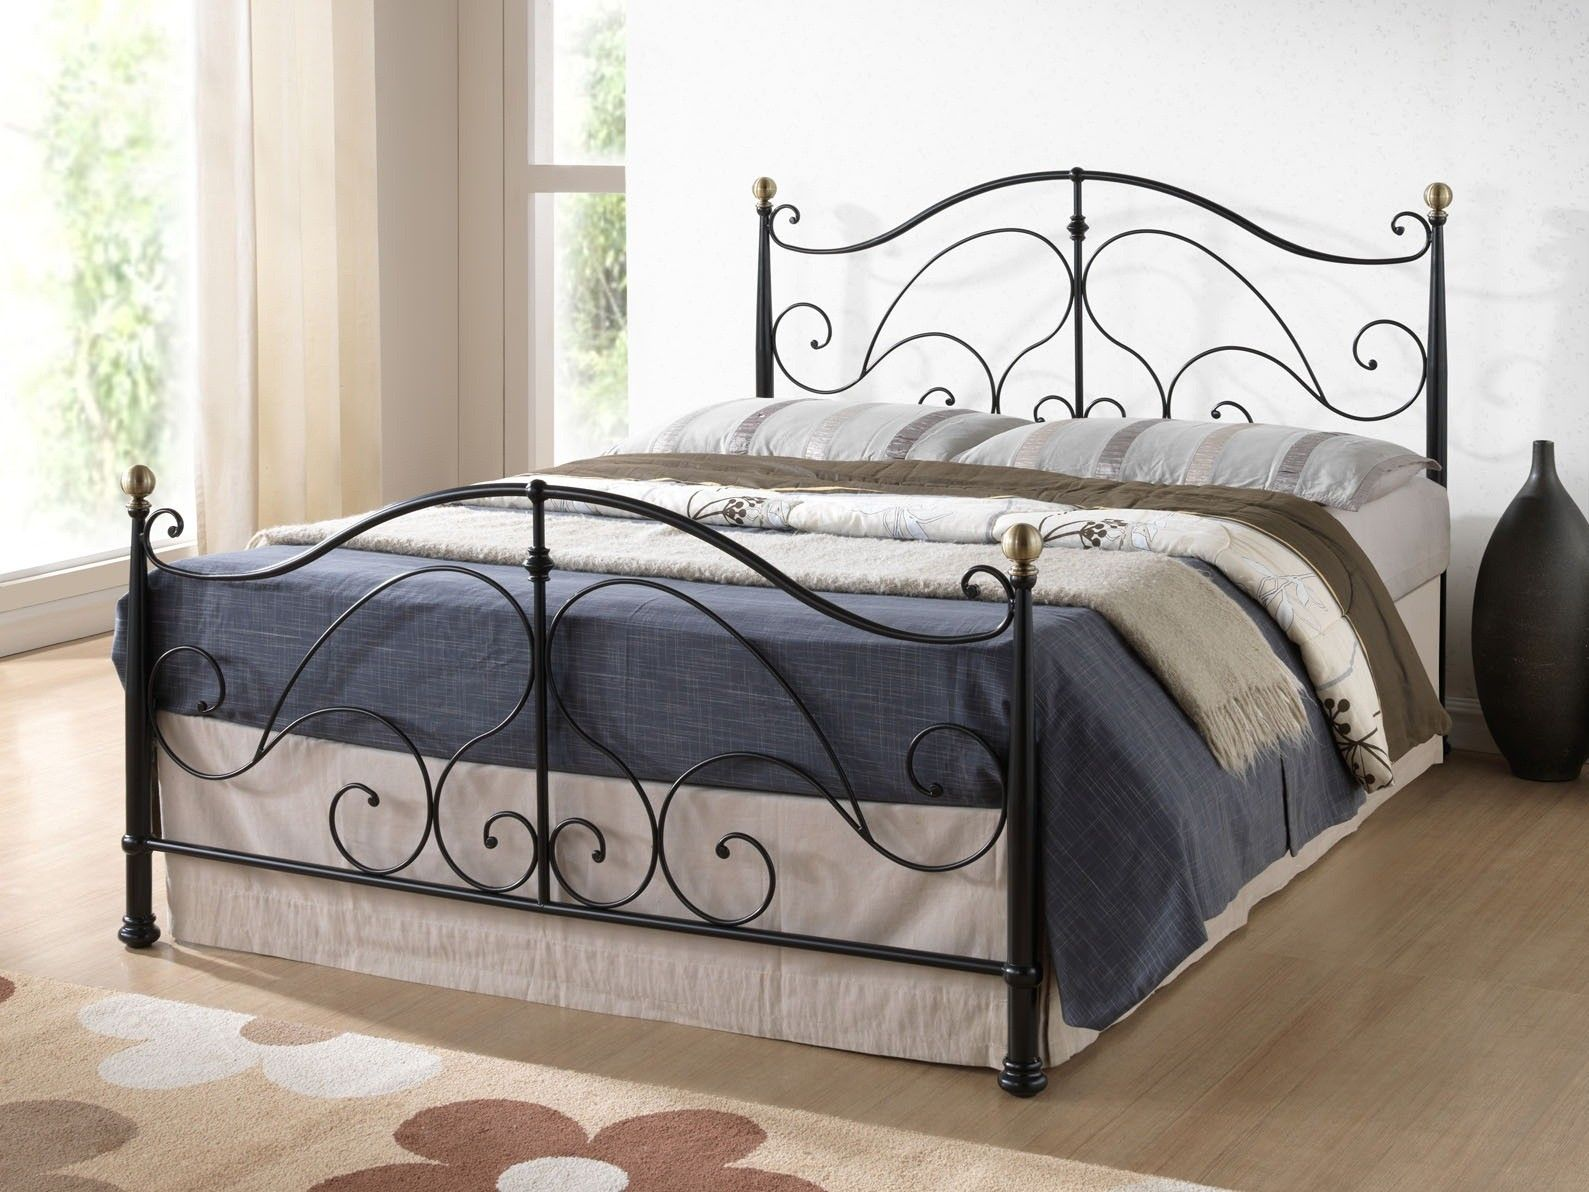 This Bonsoni Ornated Double Milano Black Bed Frame 4ft6 is